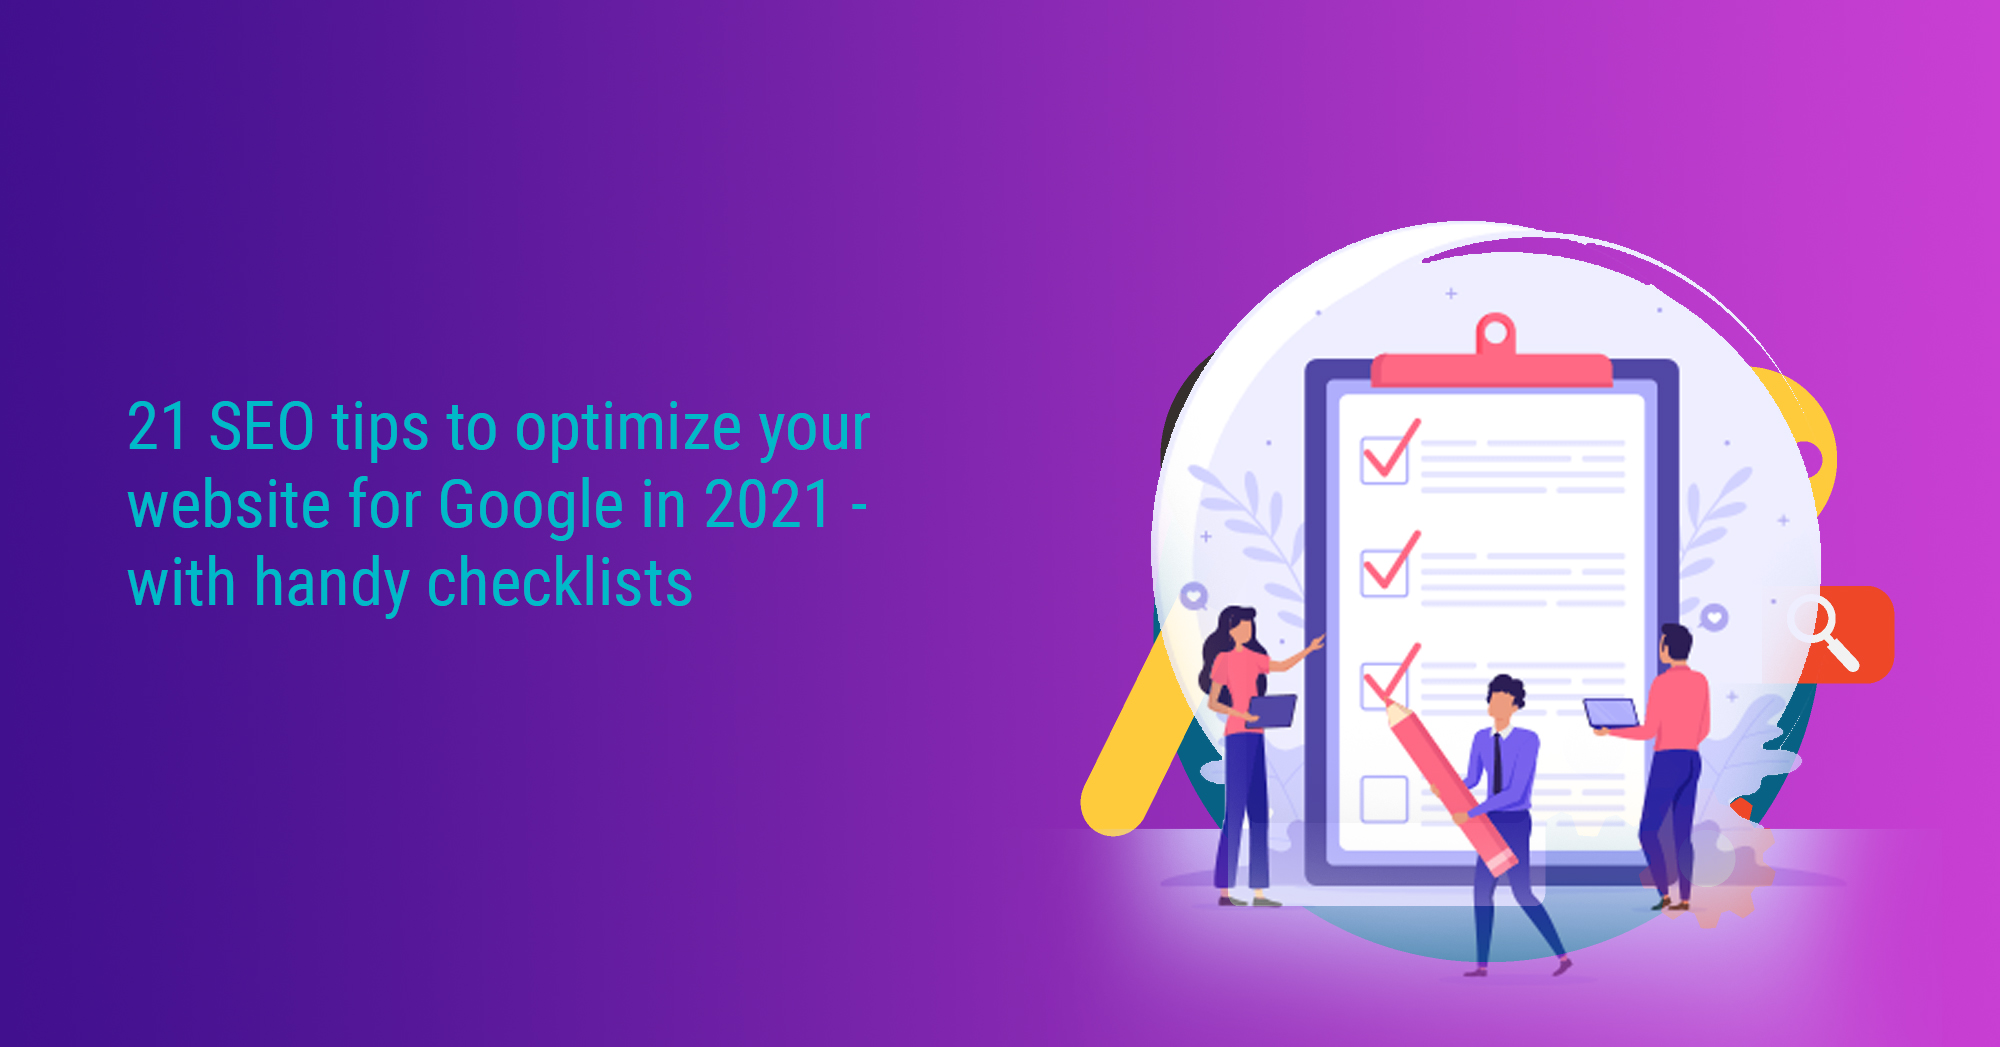 21 SEO tips to optimize your website for Google in 2021 – with handy checklists